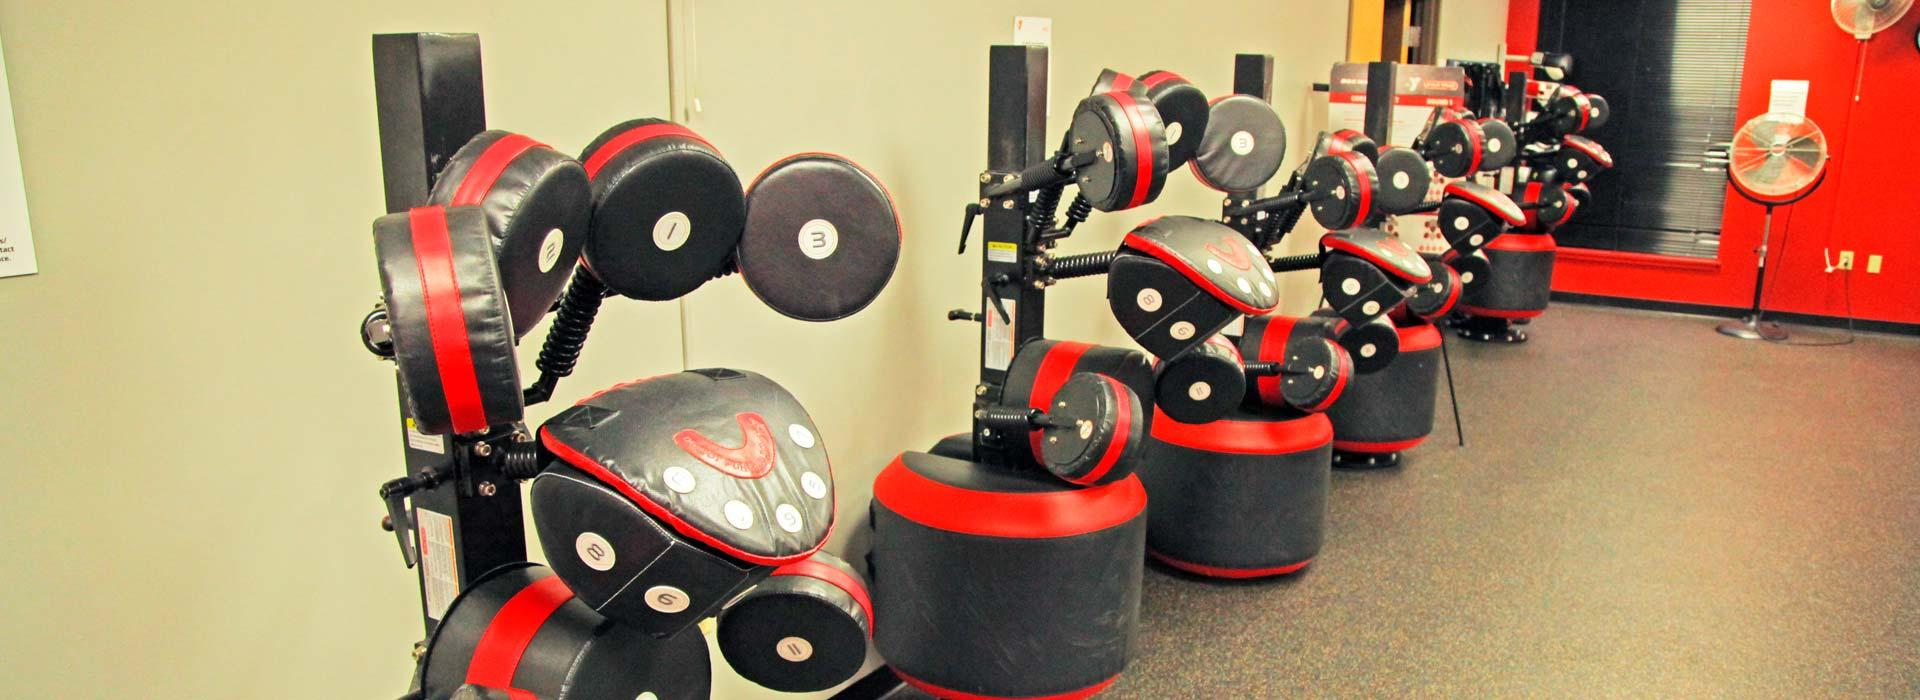 Boxmaster® stations for group boxing workouts at the Albemarle Family YMCA